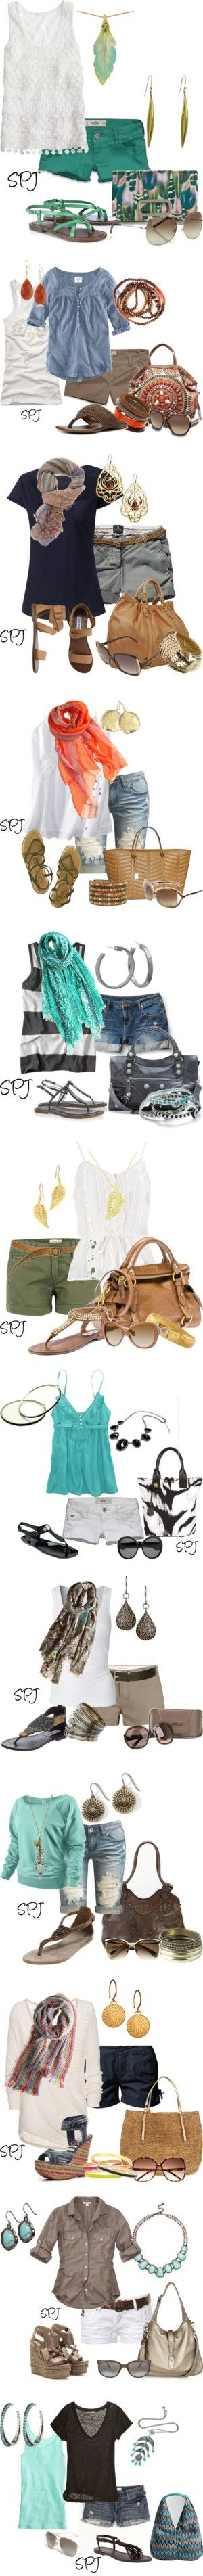 Summer outfits.